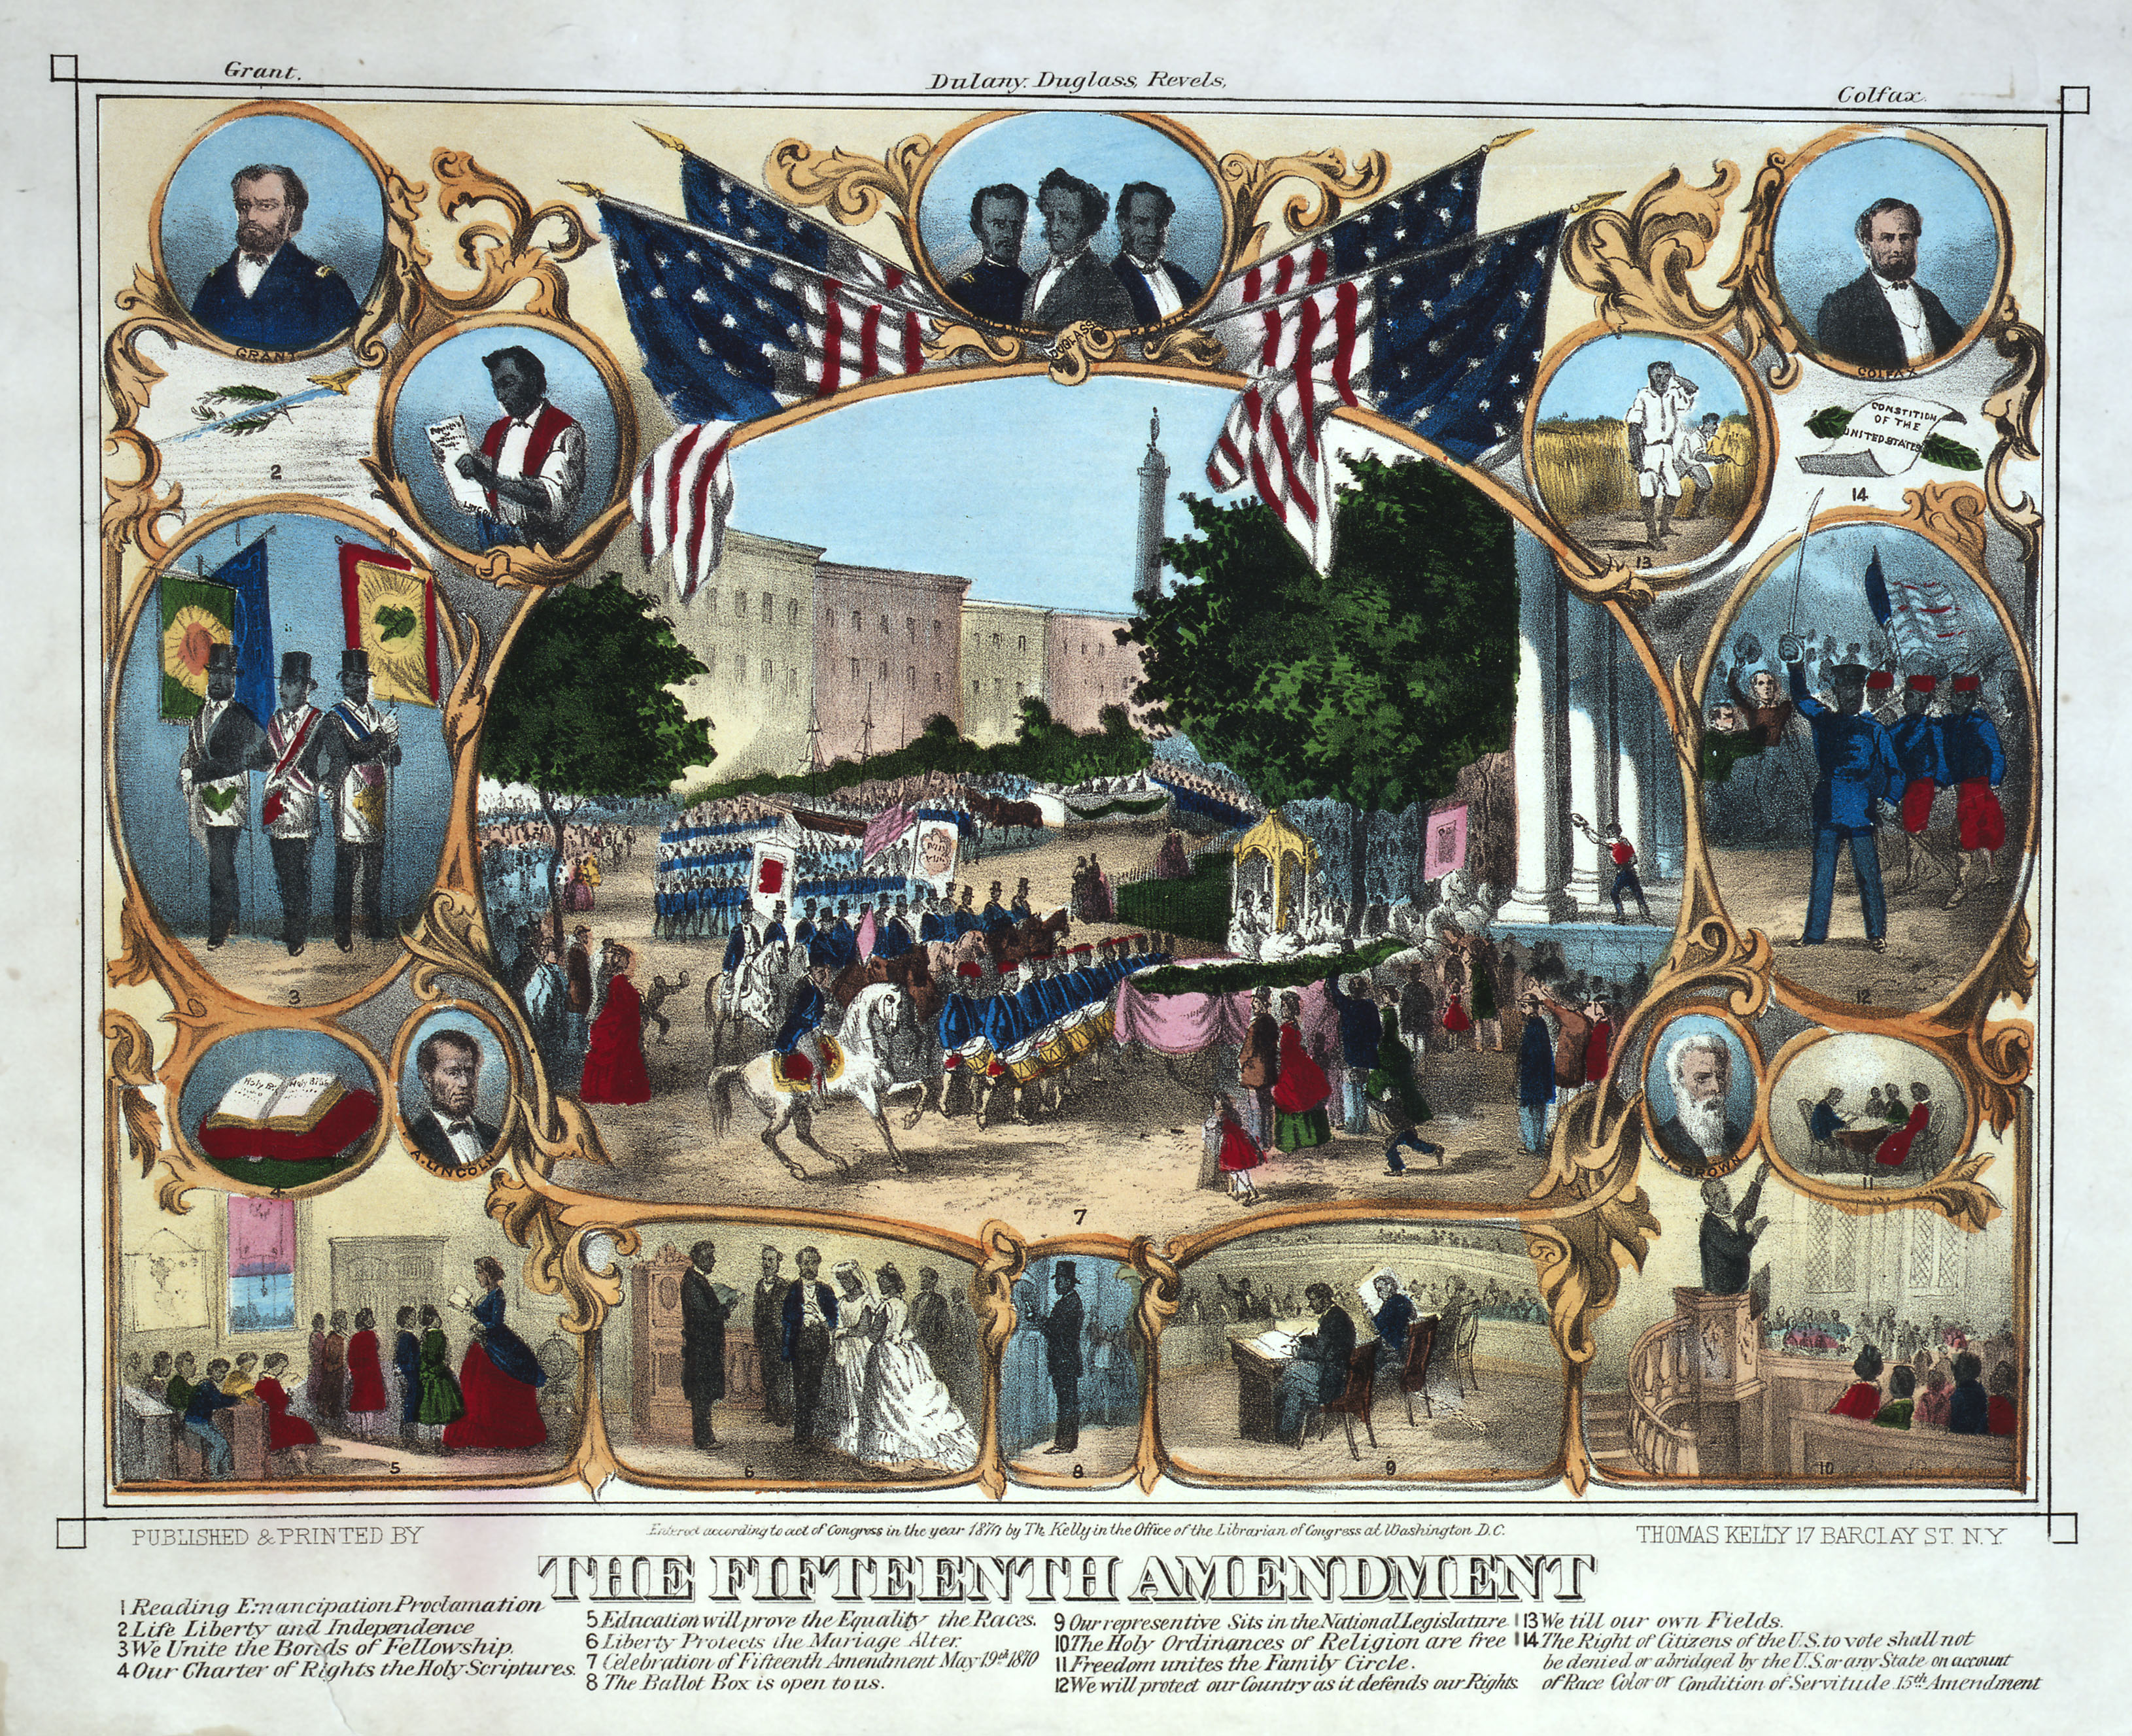 Print Celebrating the Passage of the Fifteenth Amendment in February 1870